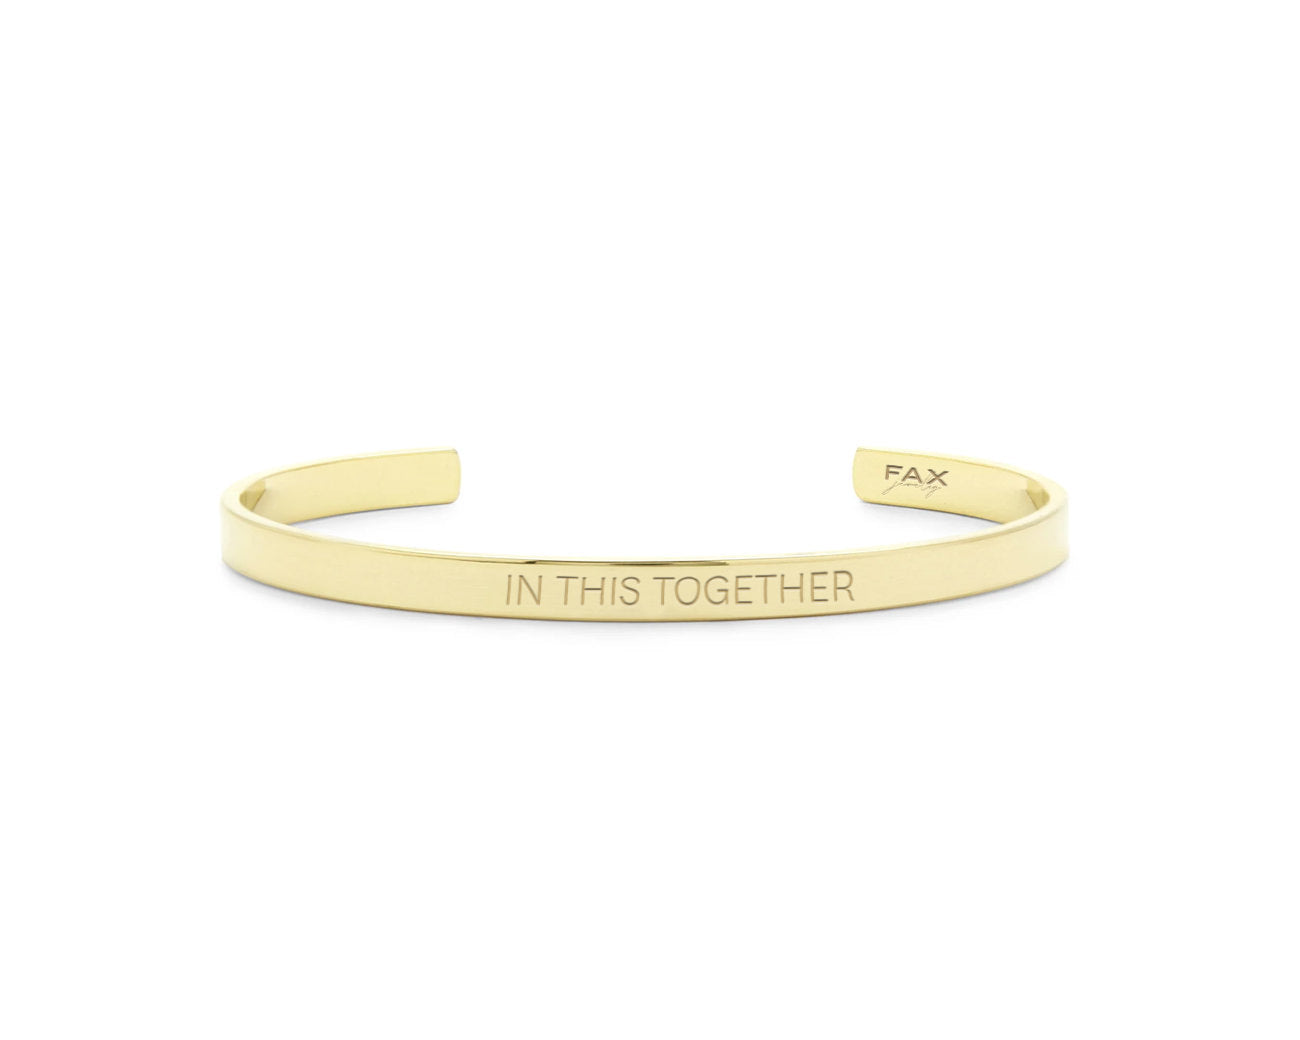 FAX Jewlery | In This Together Cuff Bracelet | 18K Gold Plated Stainless Steel | COVID-19 Fundraiser